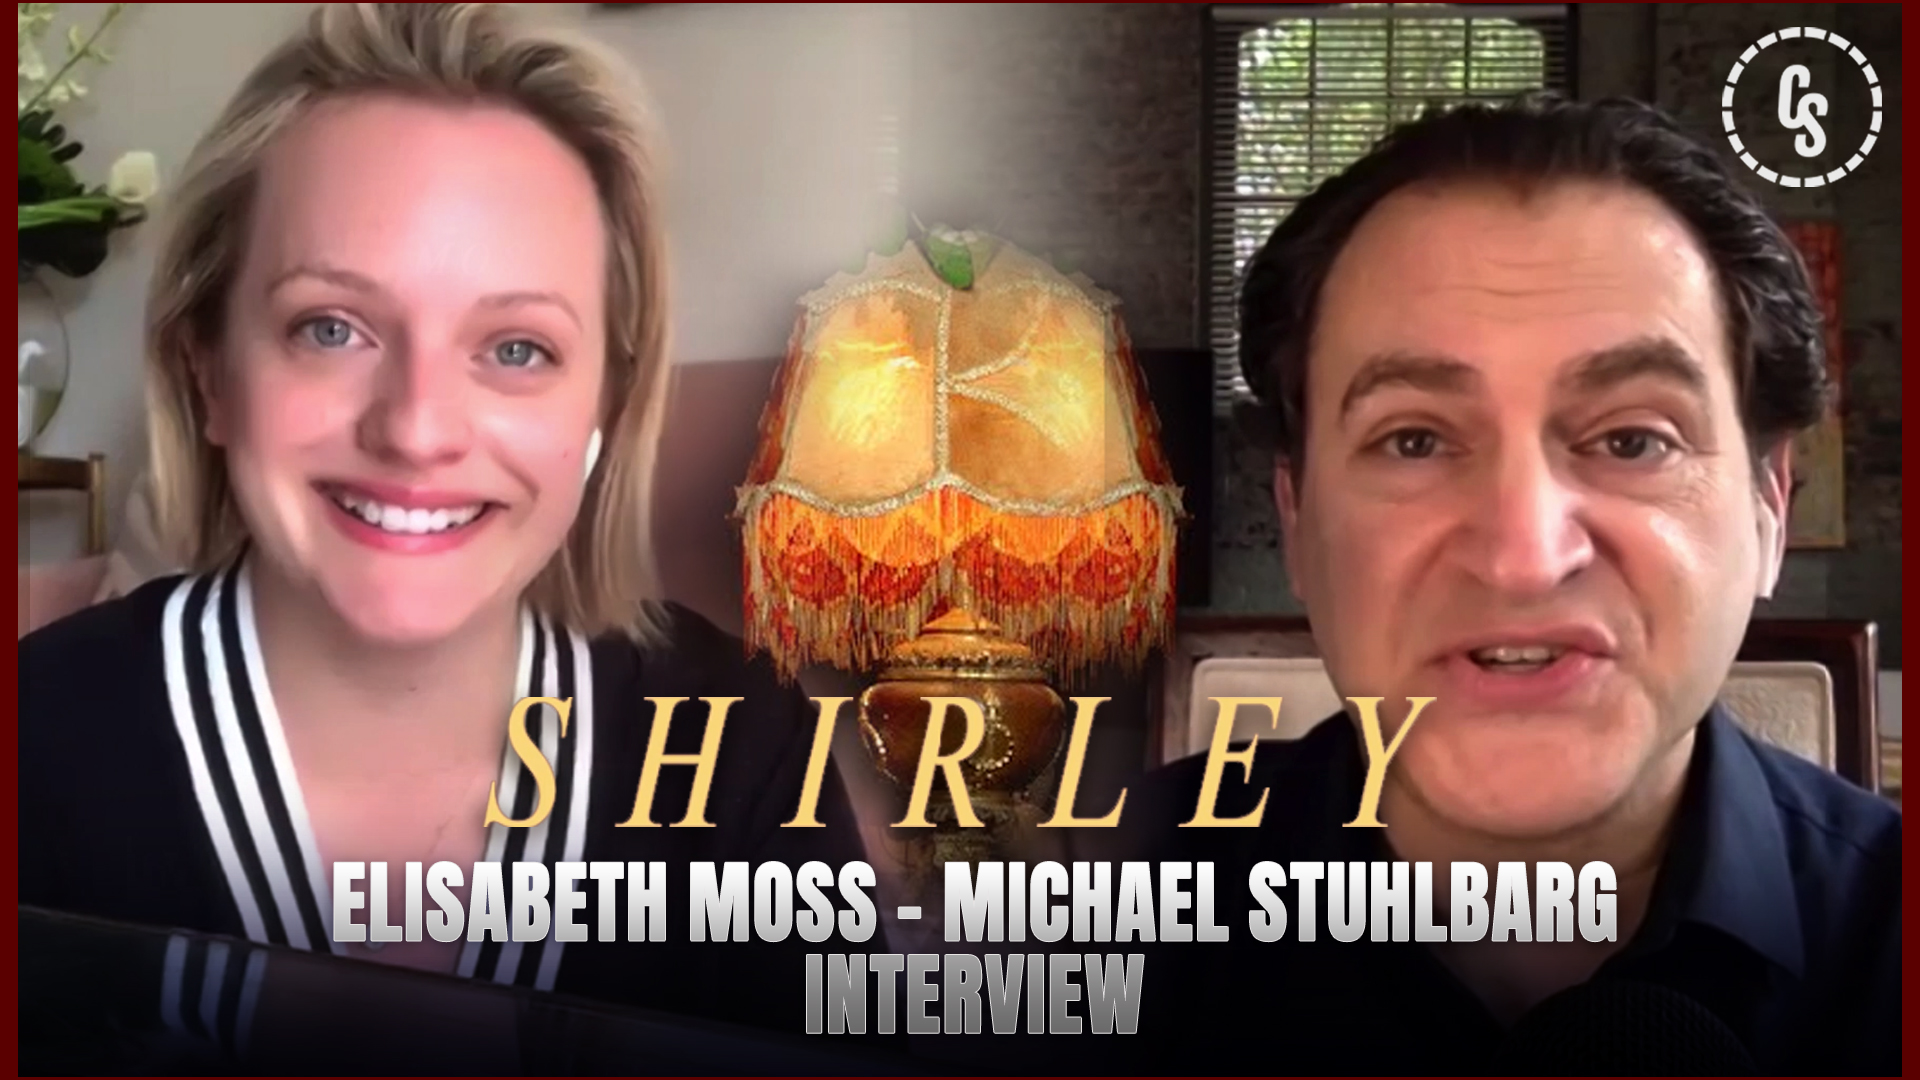 CS Video: Shirley Interview With Elisabeth Moss & Michael Stuhlbarg